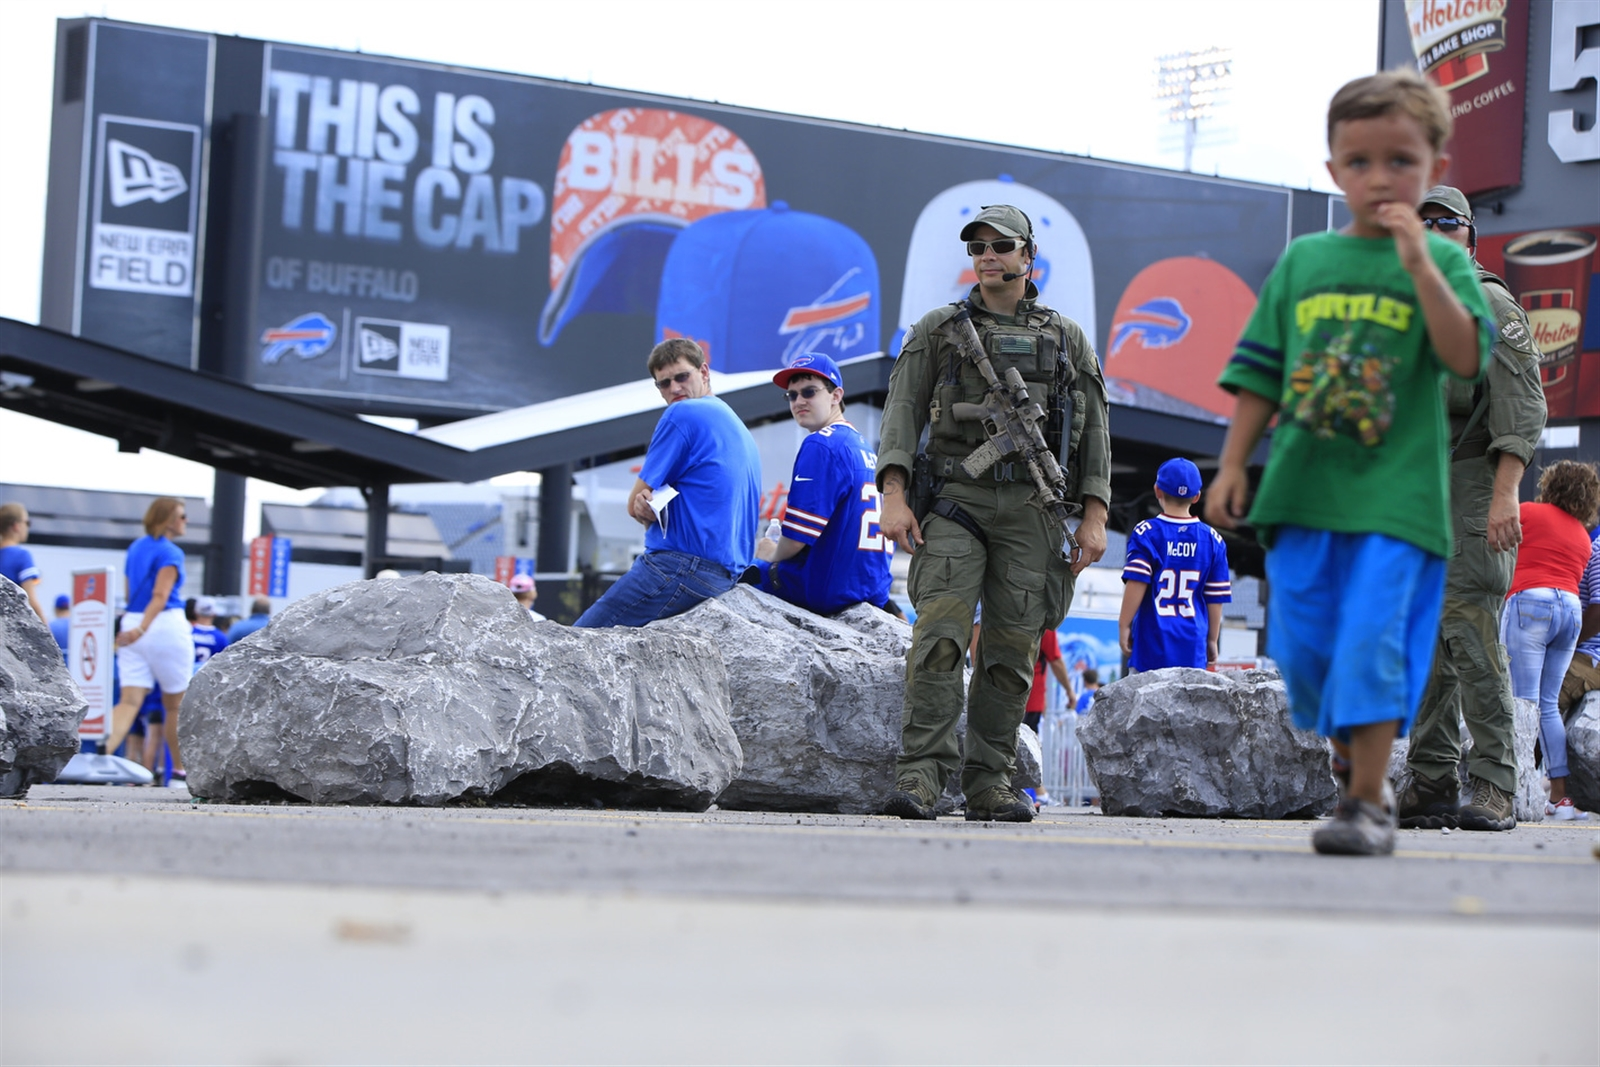 Erie County SWAT team members Ben Pisa and Matt Noecker look over a portion of the perimiter of New Era Field prior to the Buffalo Bills and New York Giants game on Saturday, Aug. 20, 2016.